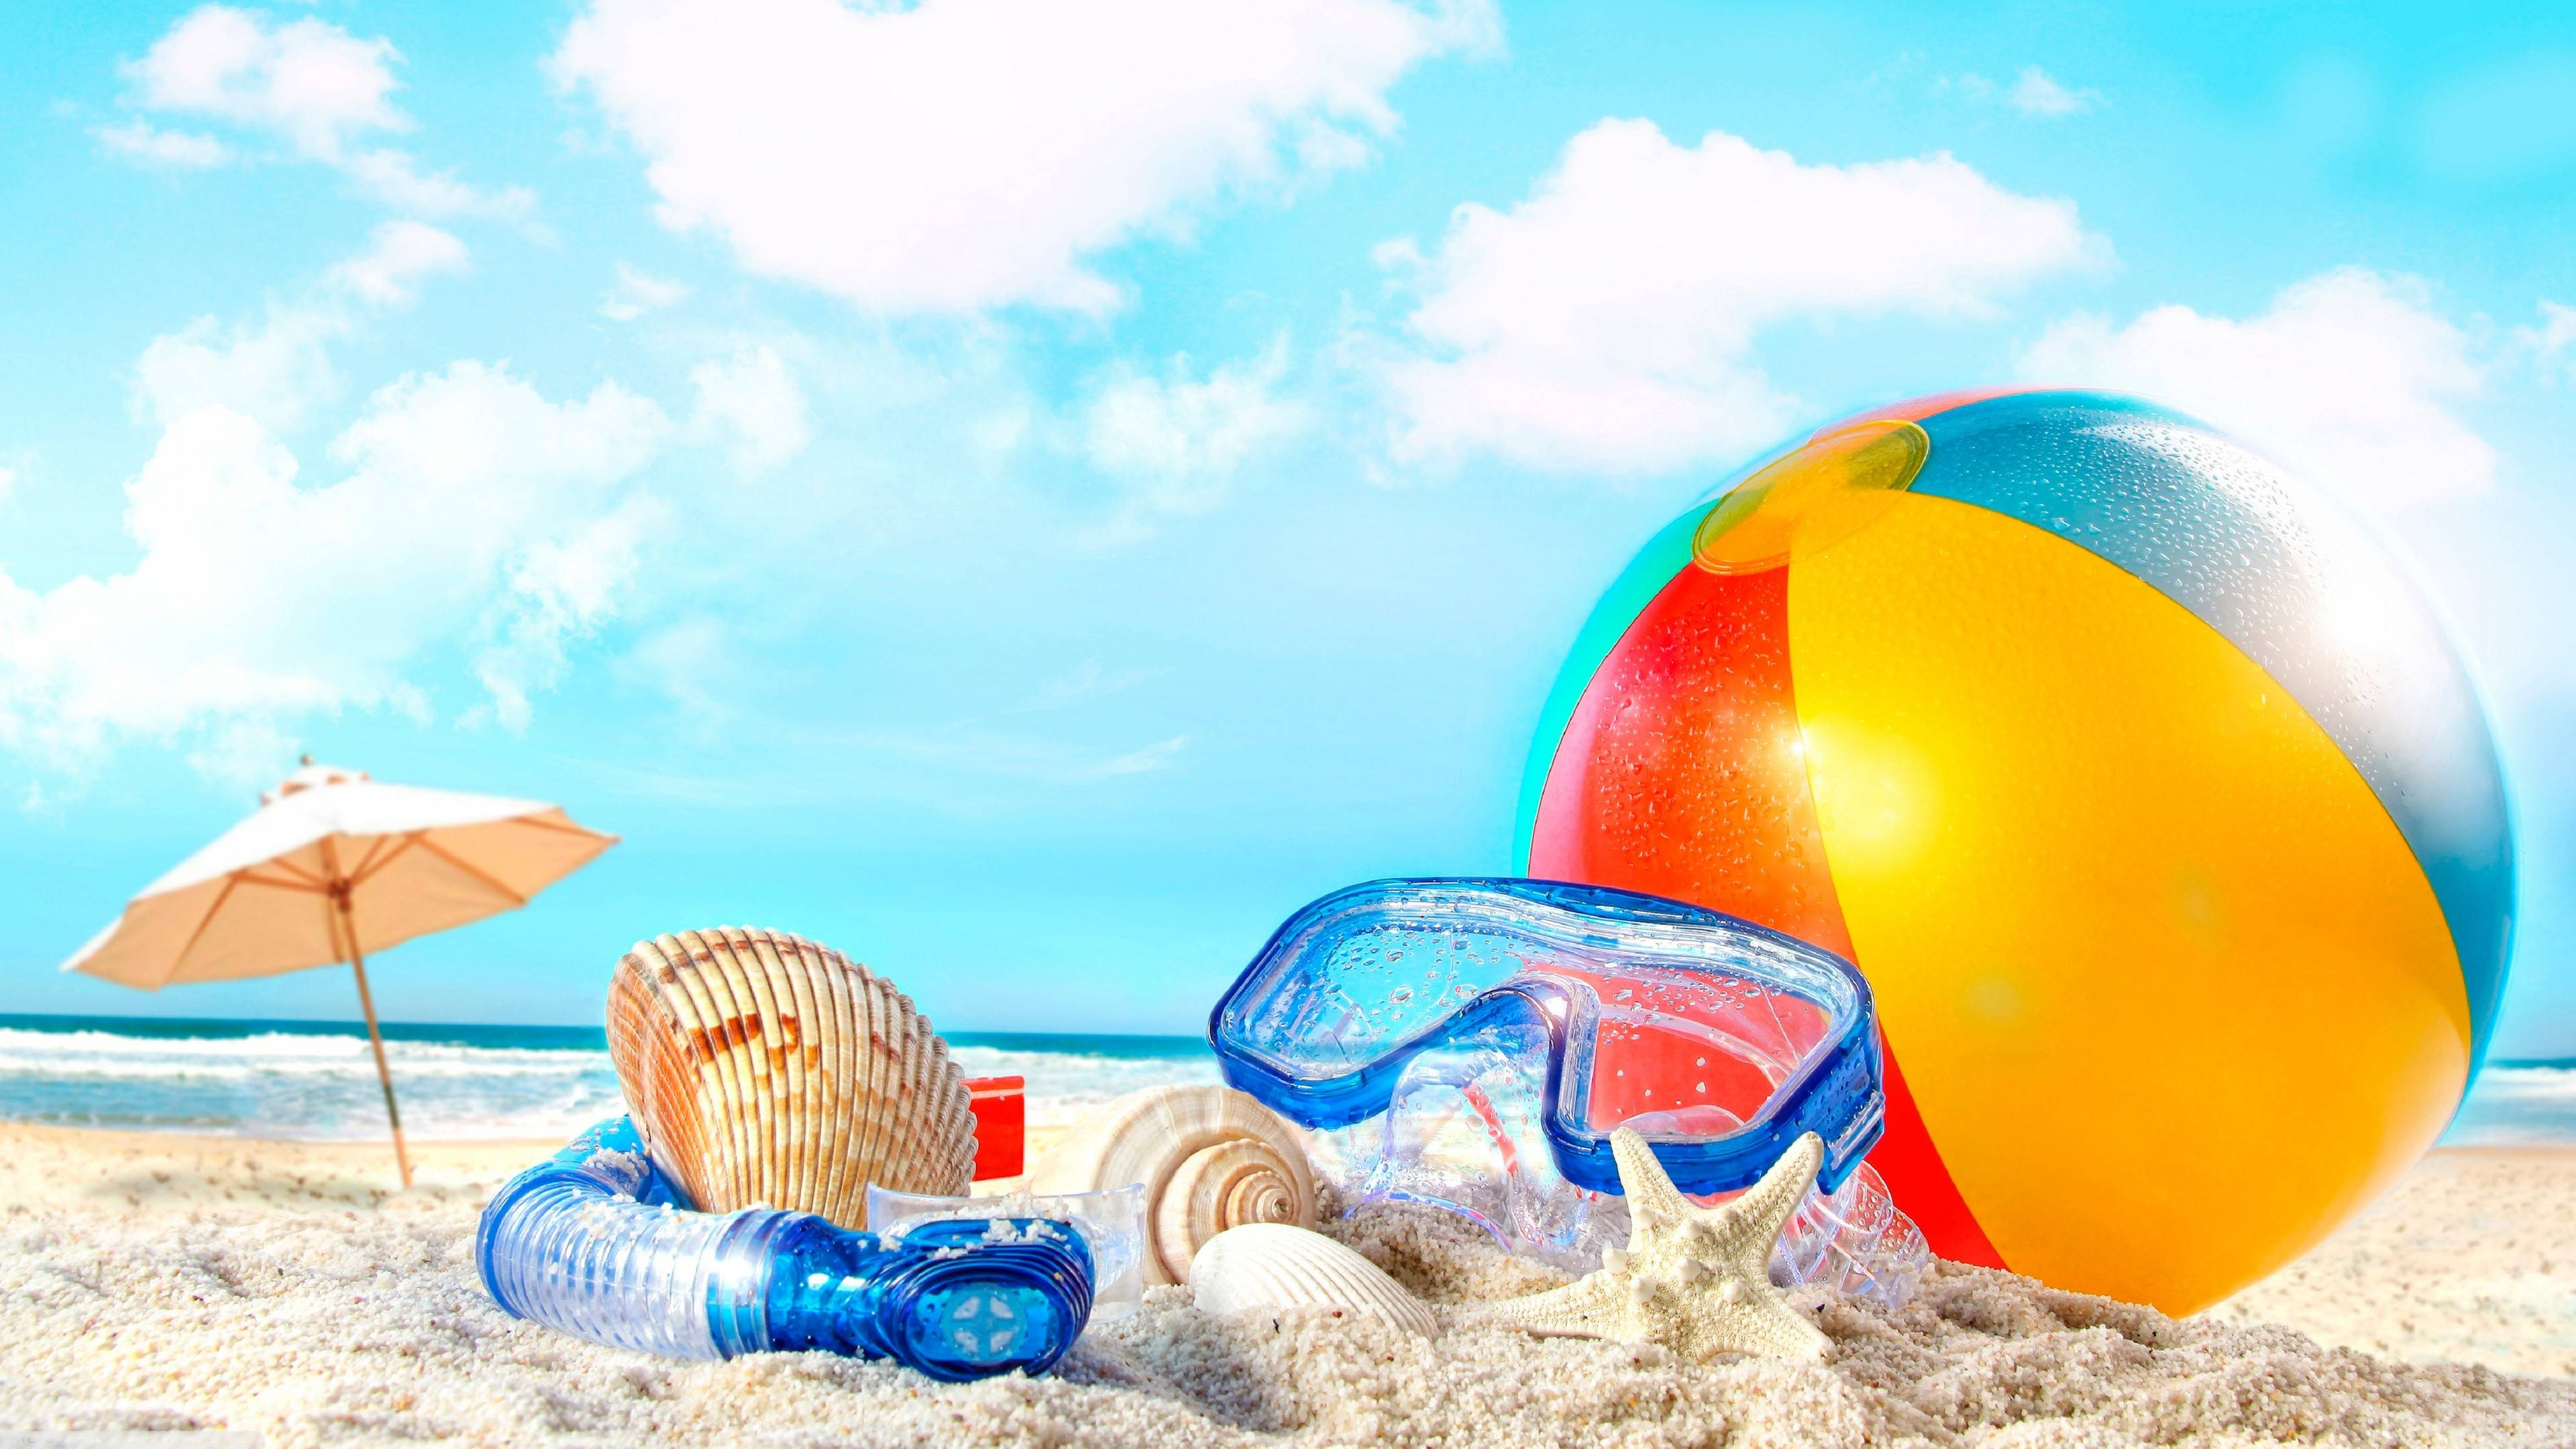 awesome summer wallpapers hd - photo #15